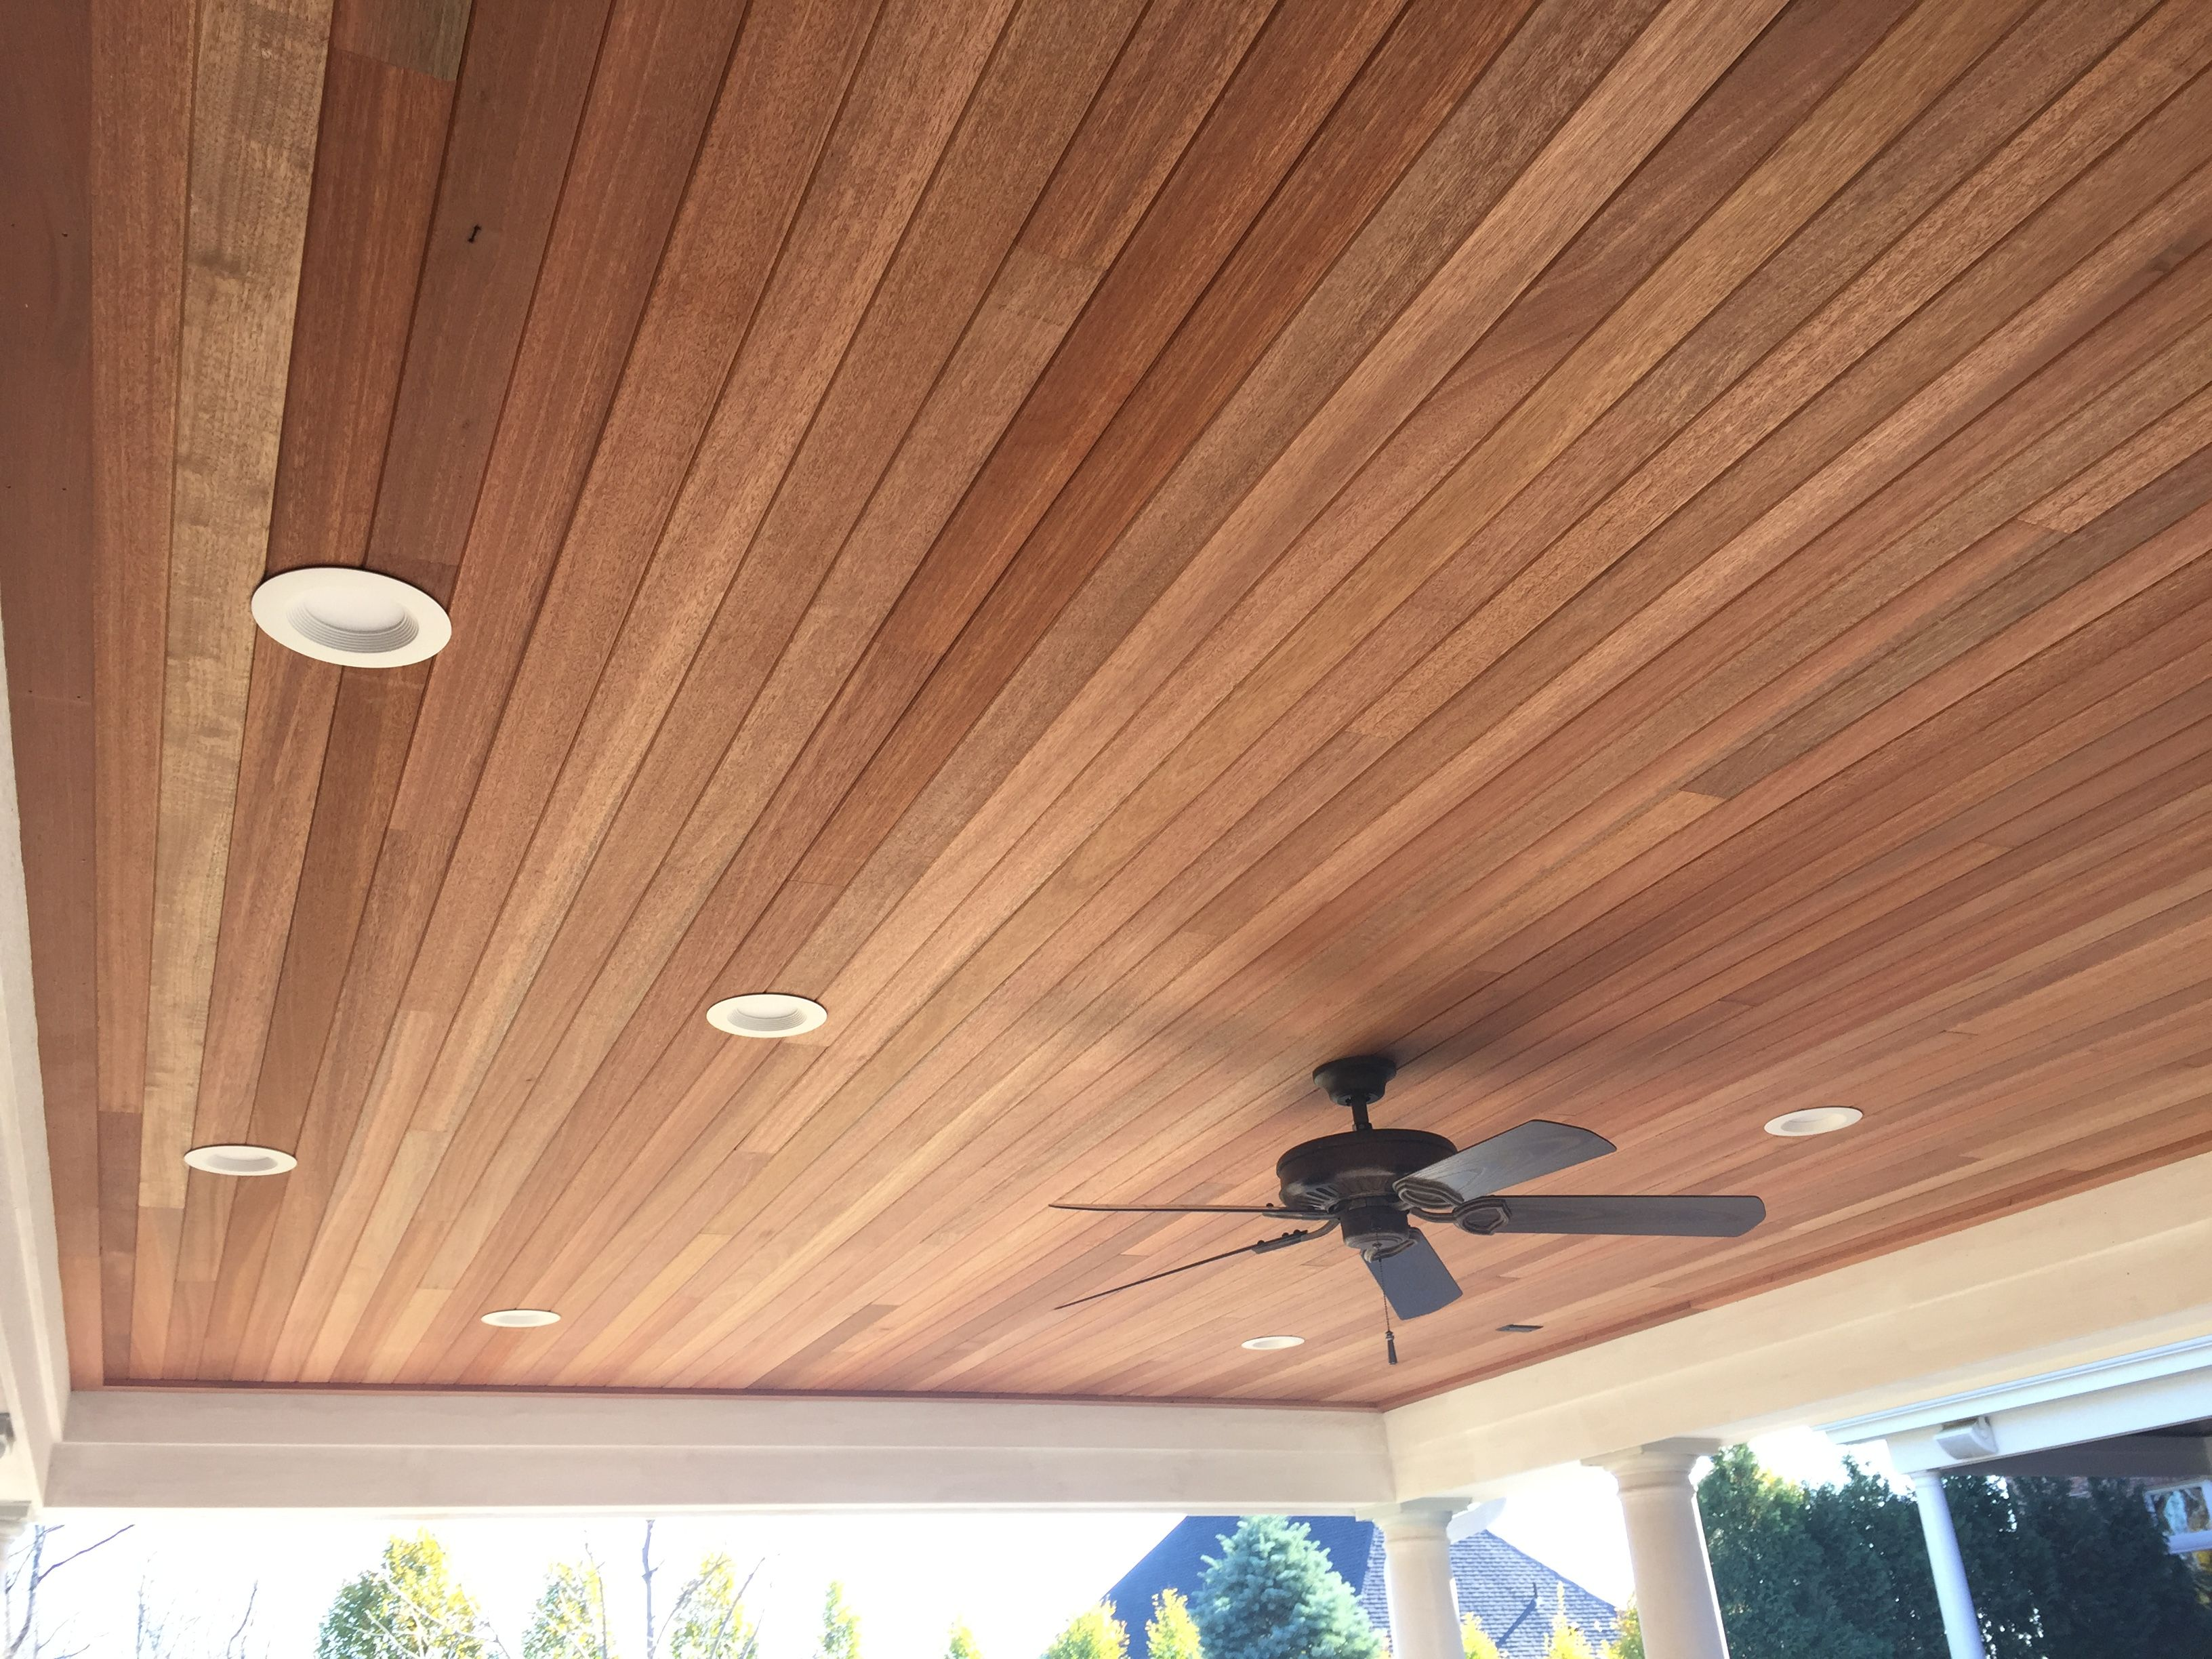 Gorgeous mahogany tongue and groove ceiling for an outdoor ...